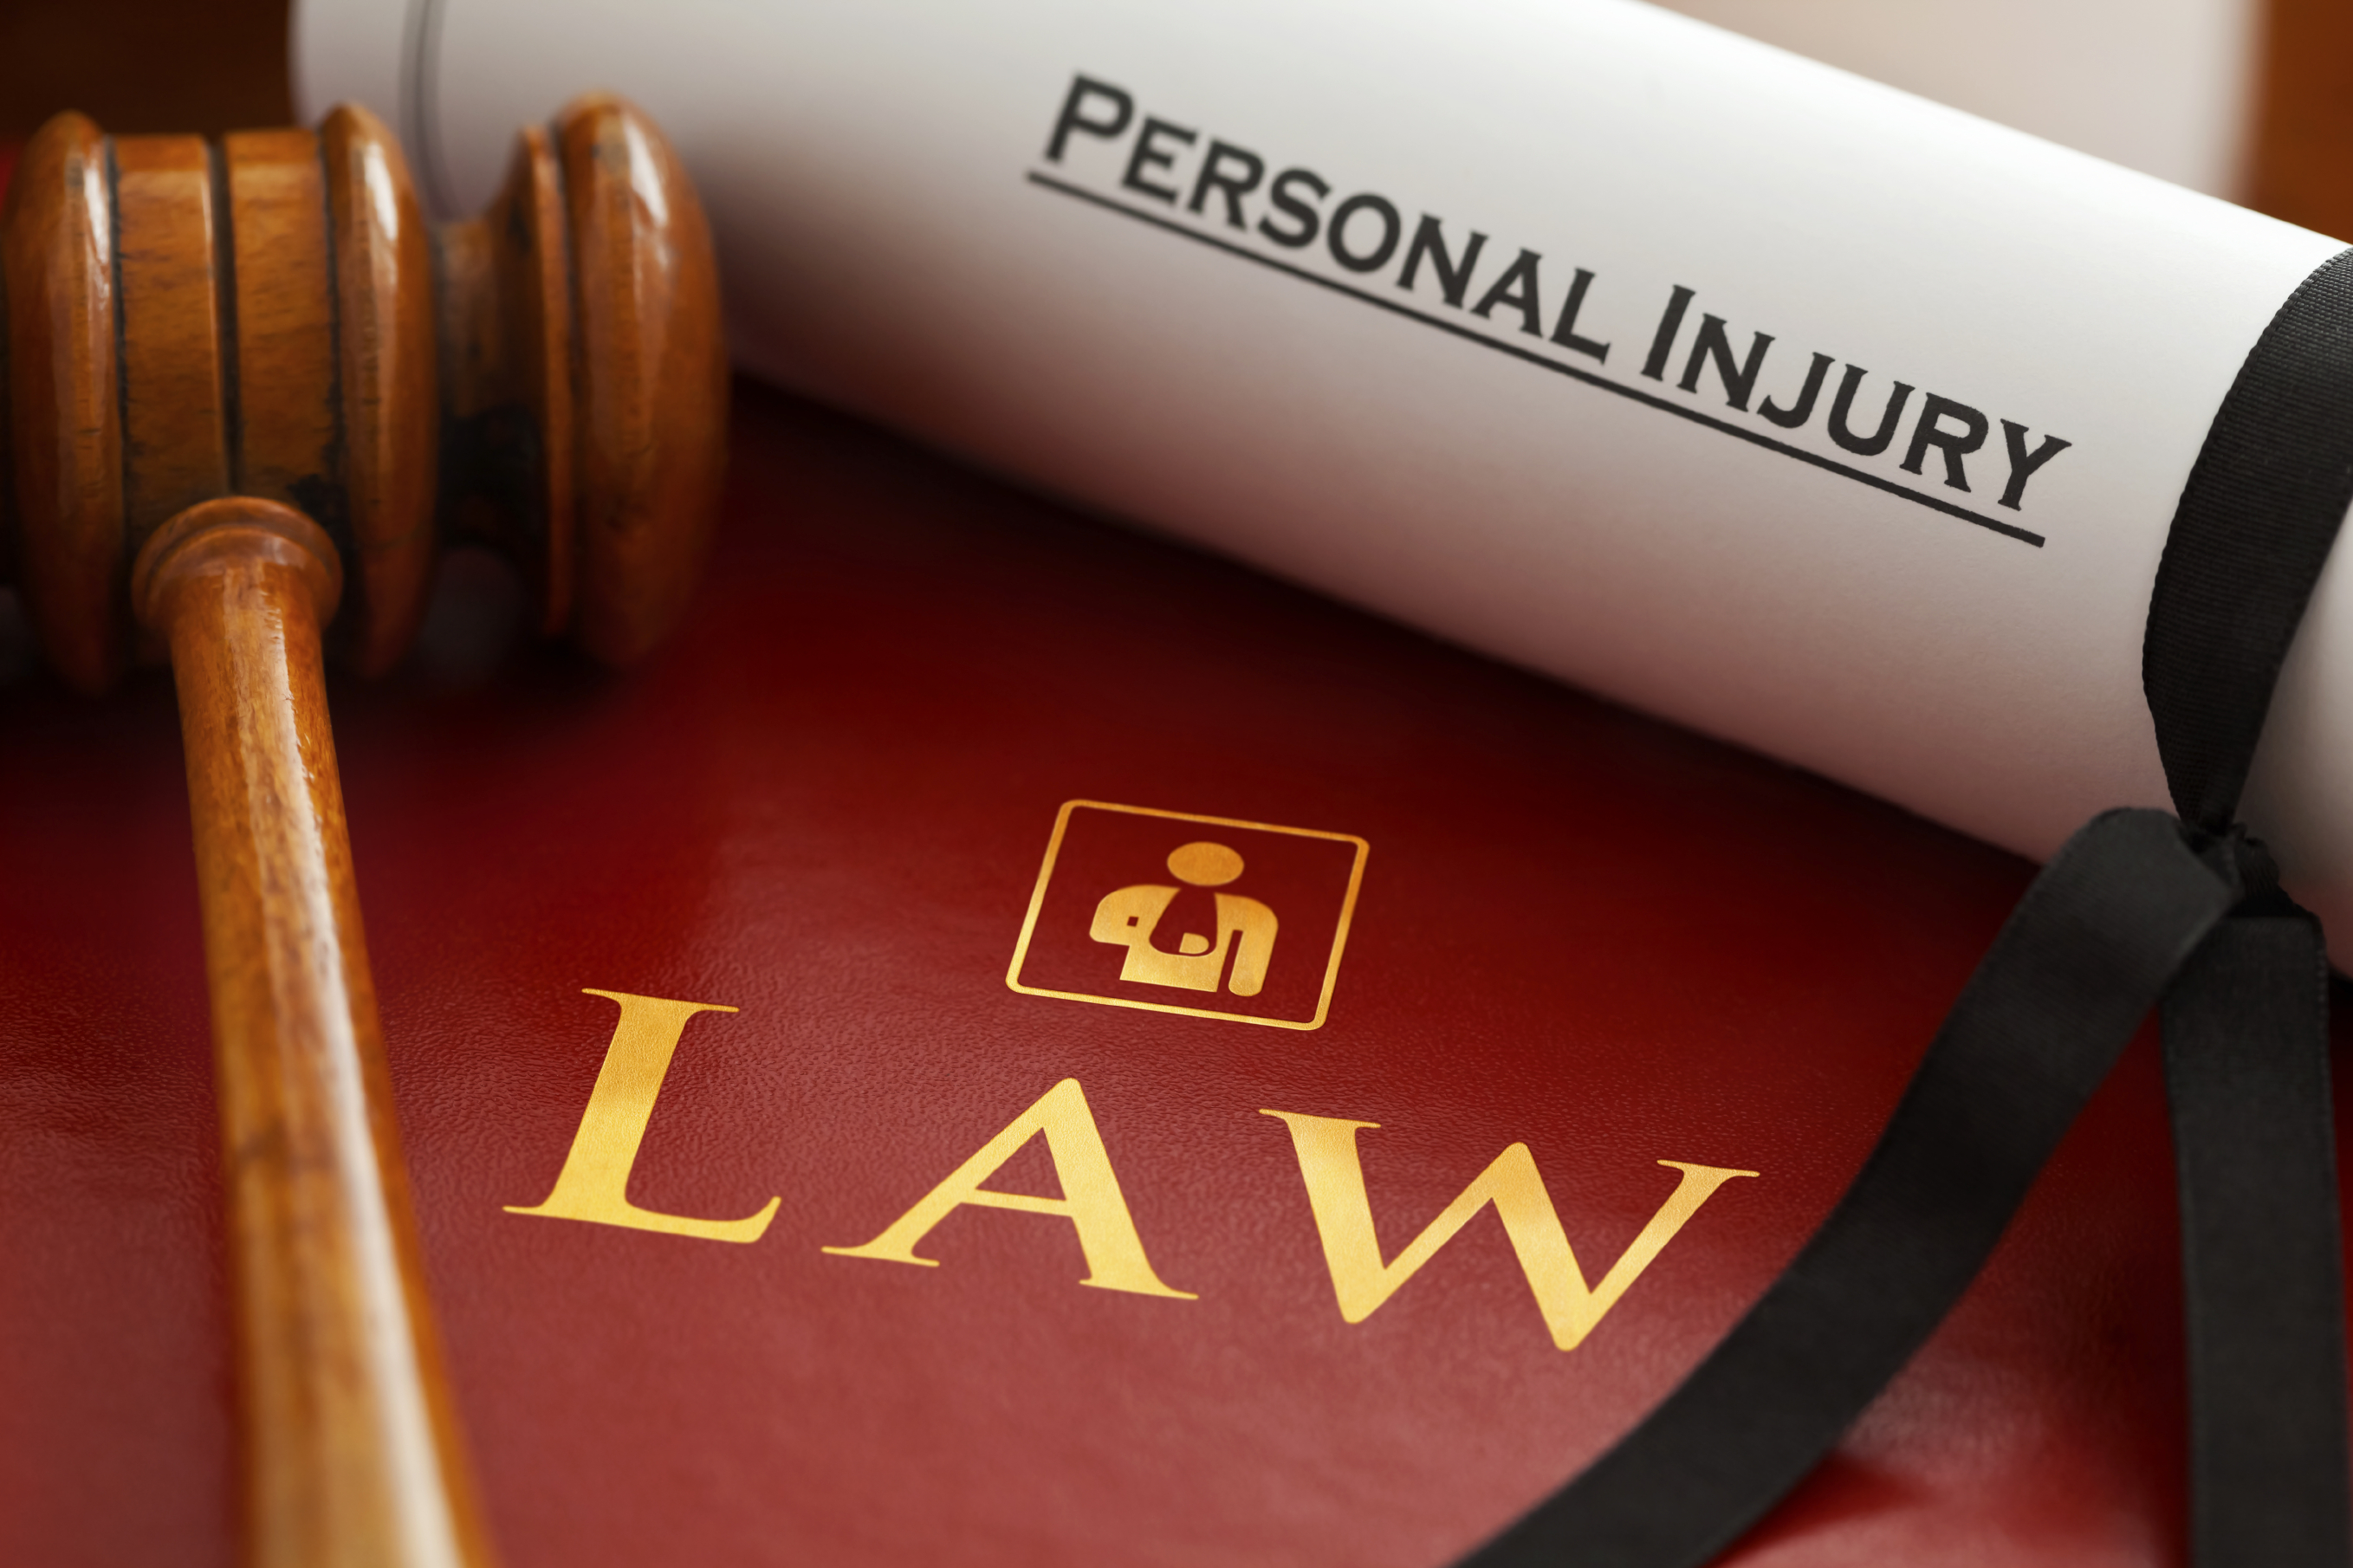 personal injury lawyer cleveland